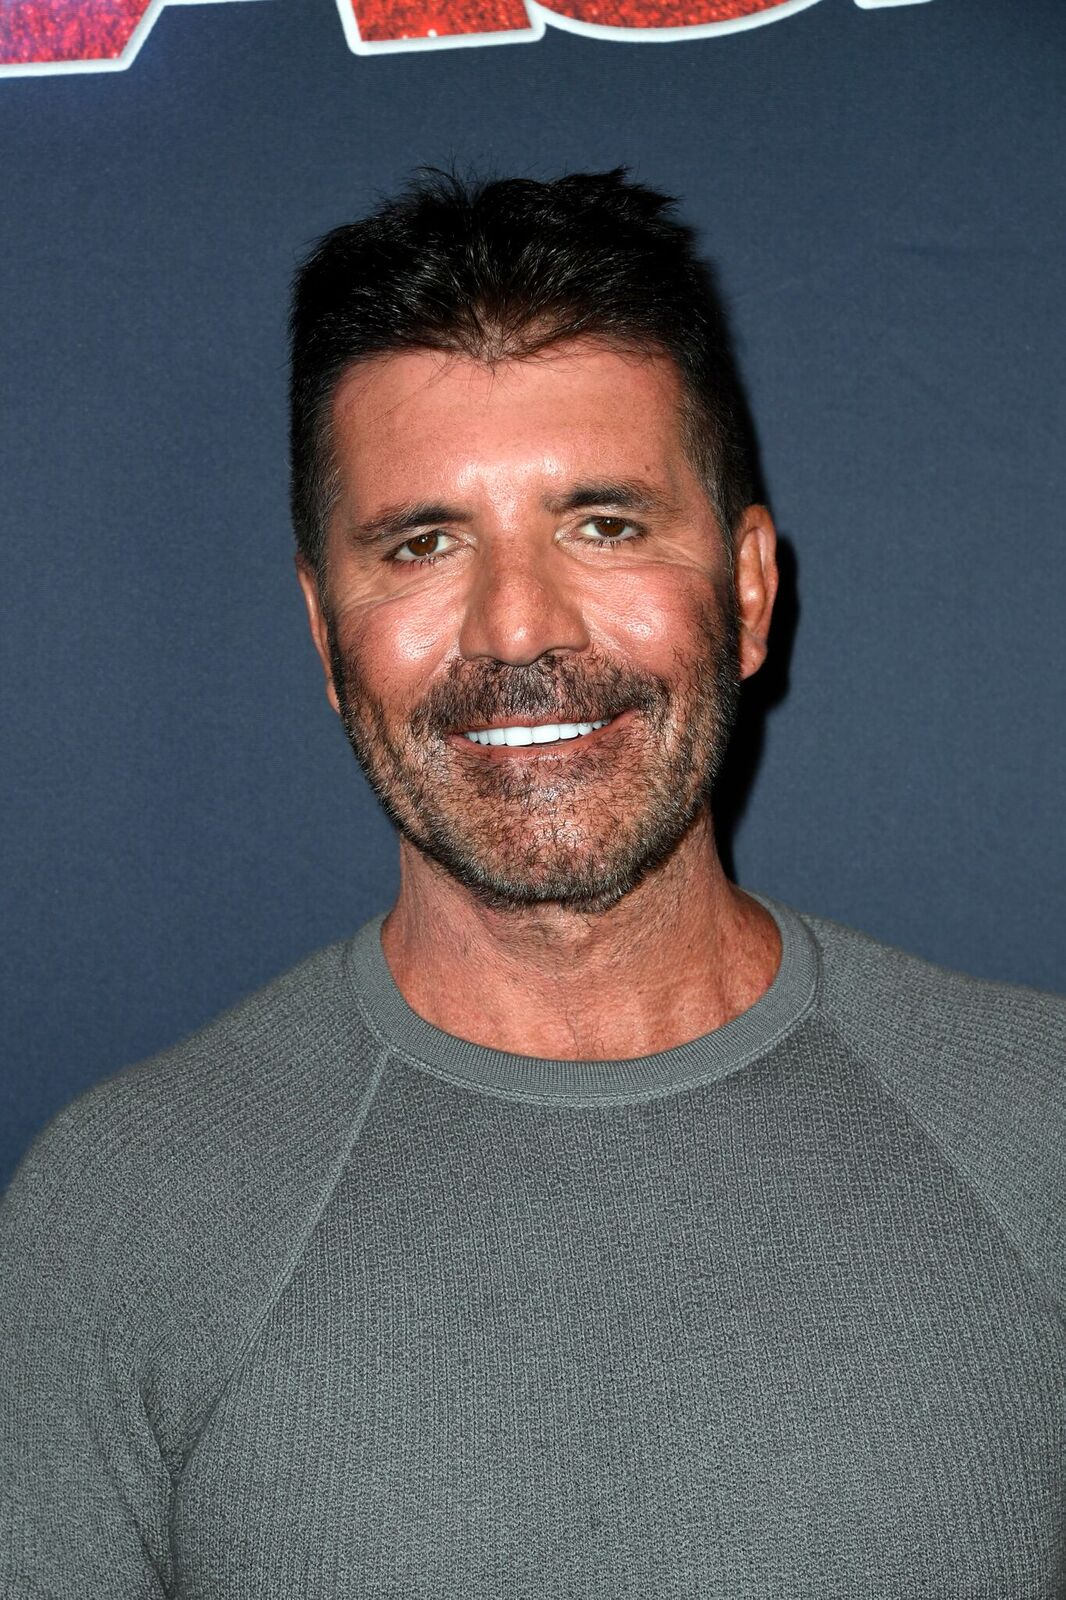 """Simon Cowell attends """"America's Got Talent"""" Season 14 Live Show at Dolby Theatre on August 13, 2019